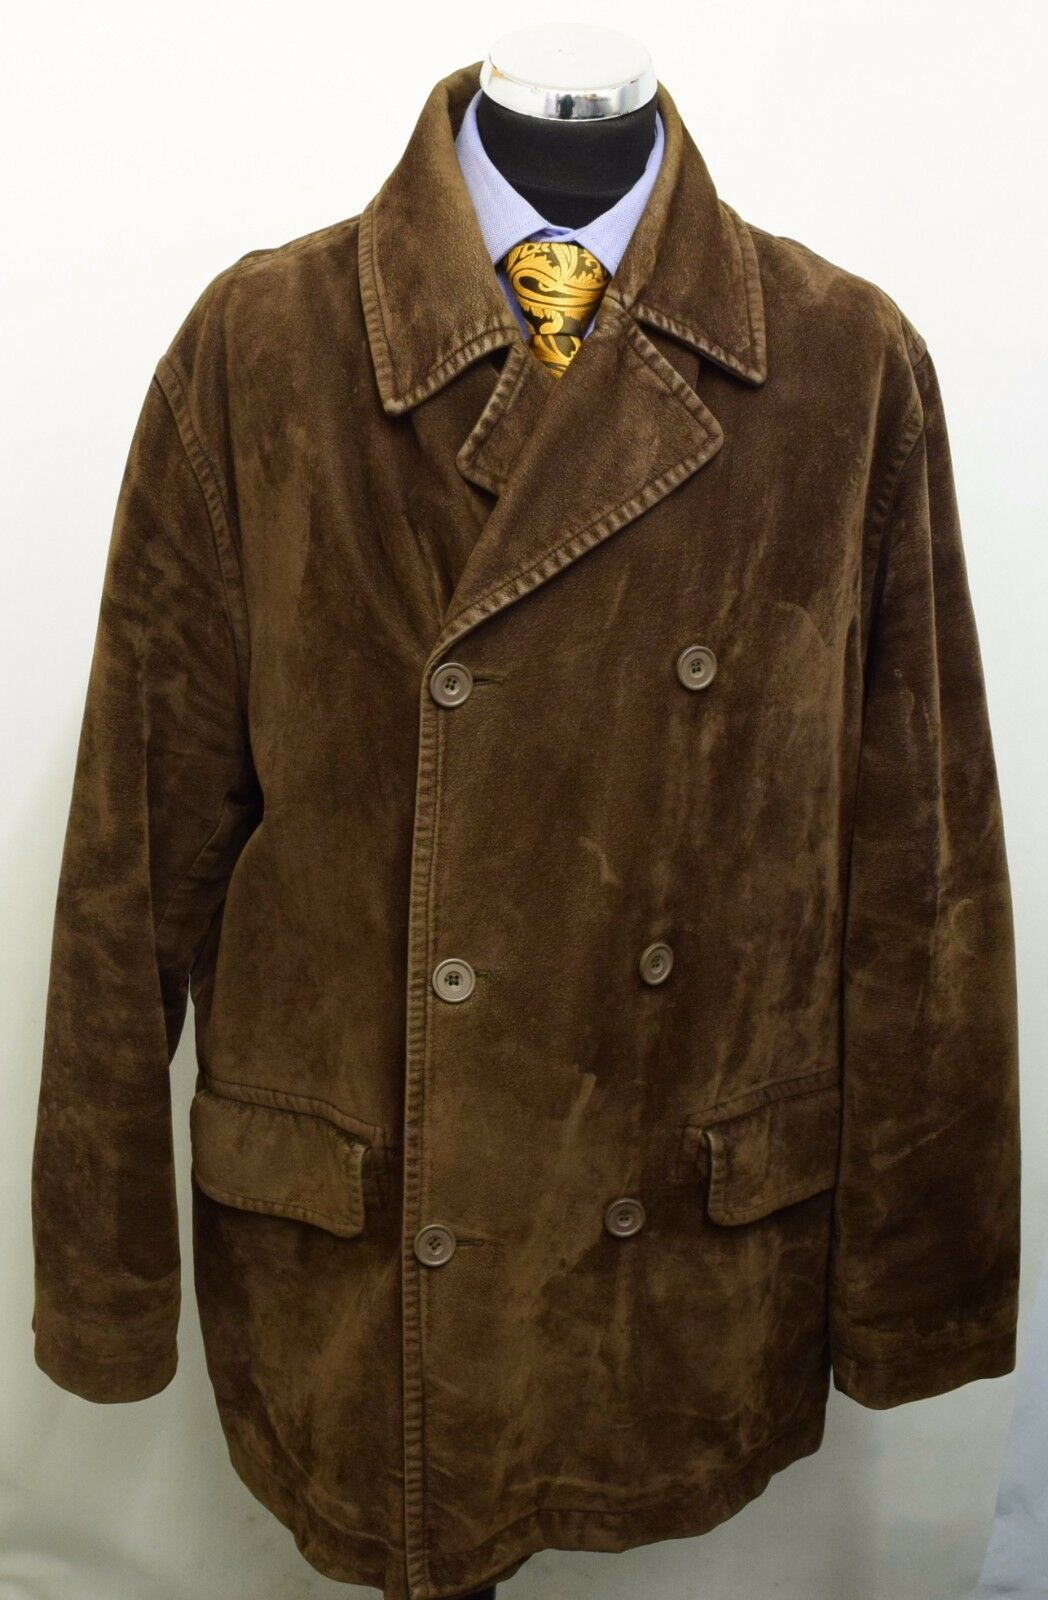 MS1189 RIVER ISLAND MEN'S BROWN COAT SIZE XL